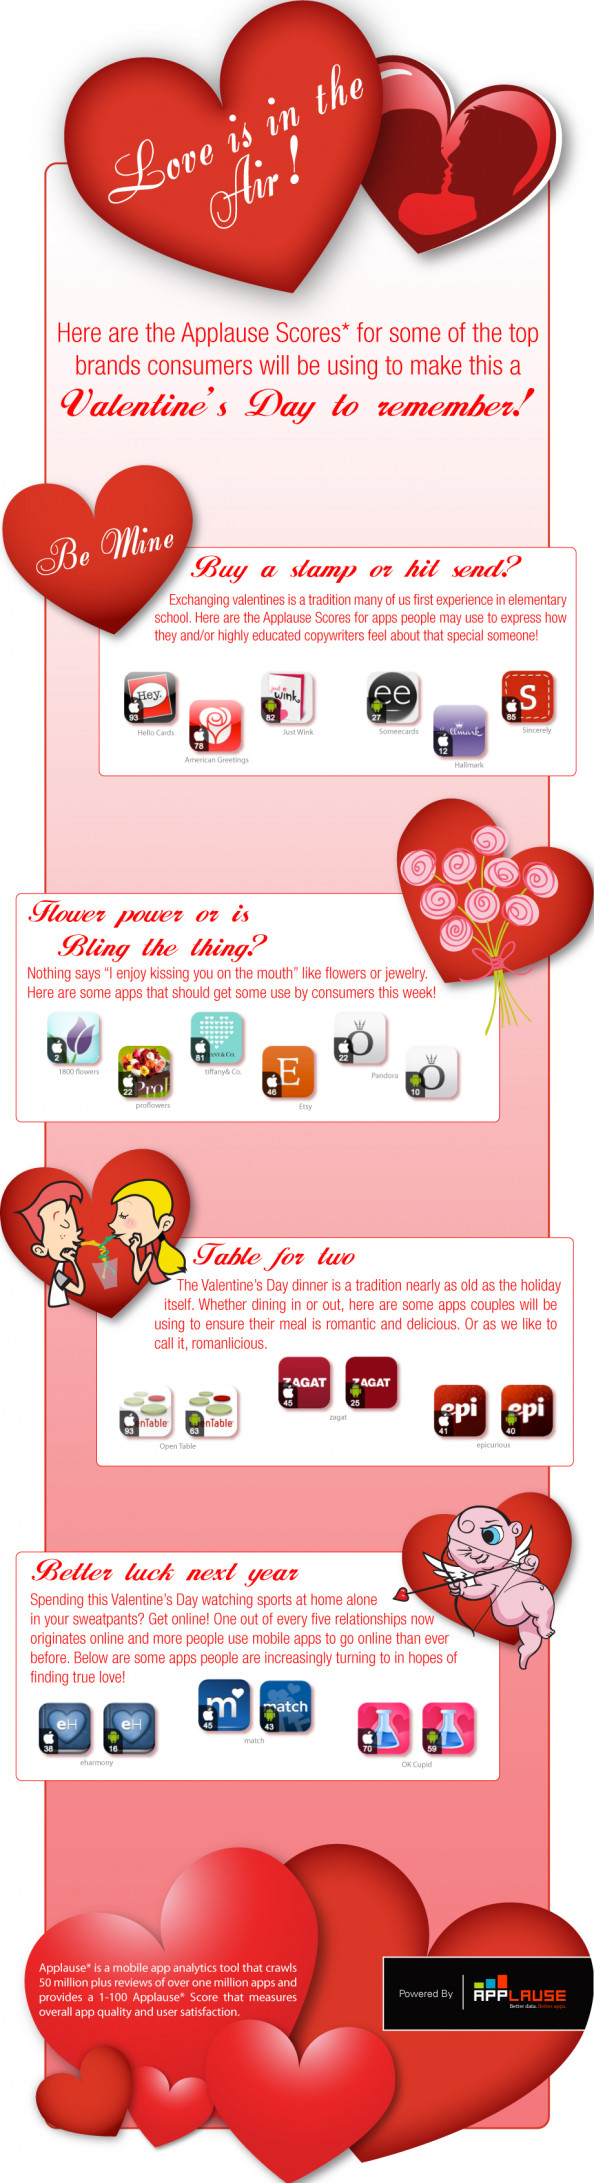 Top Apps for Valentine's Day Infographic